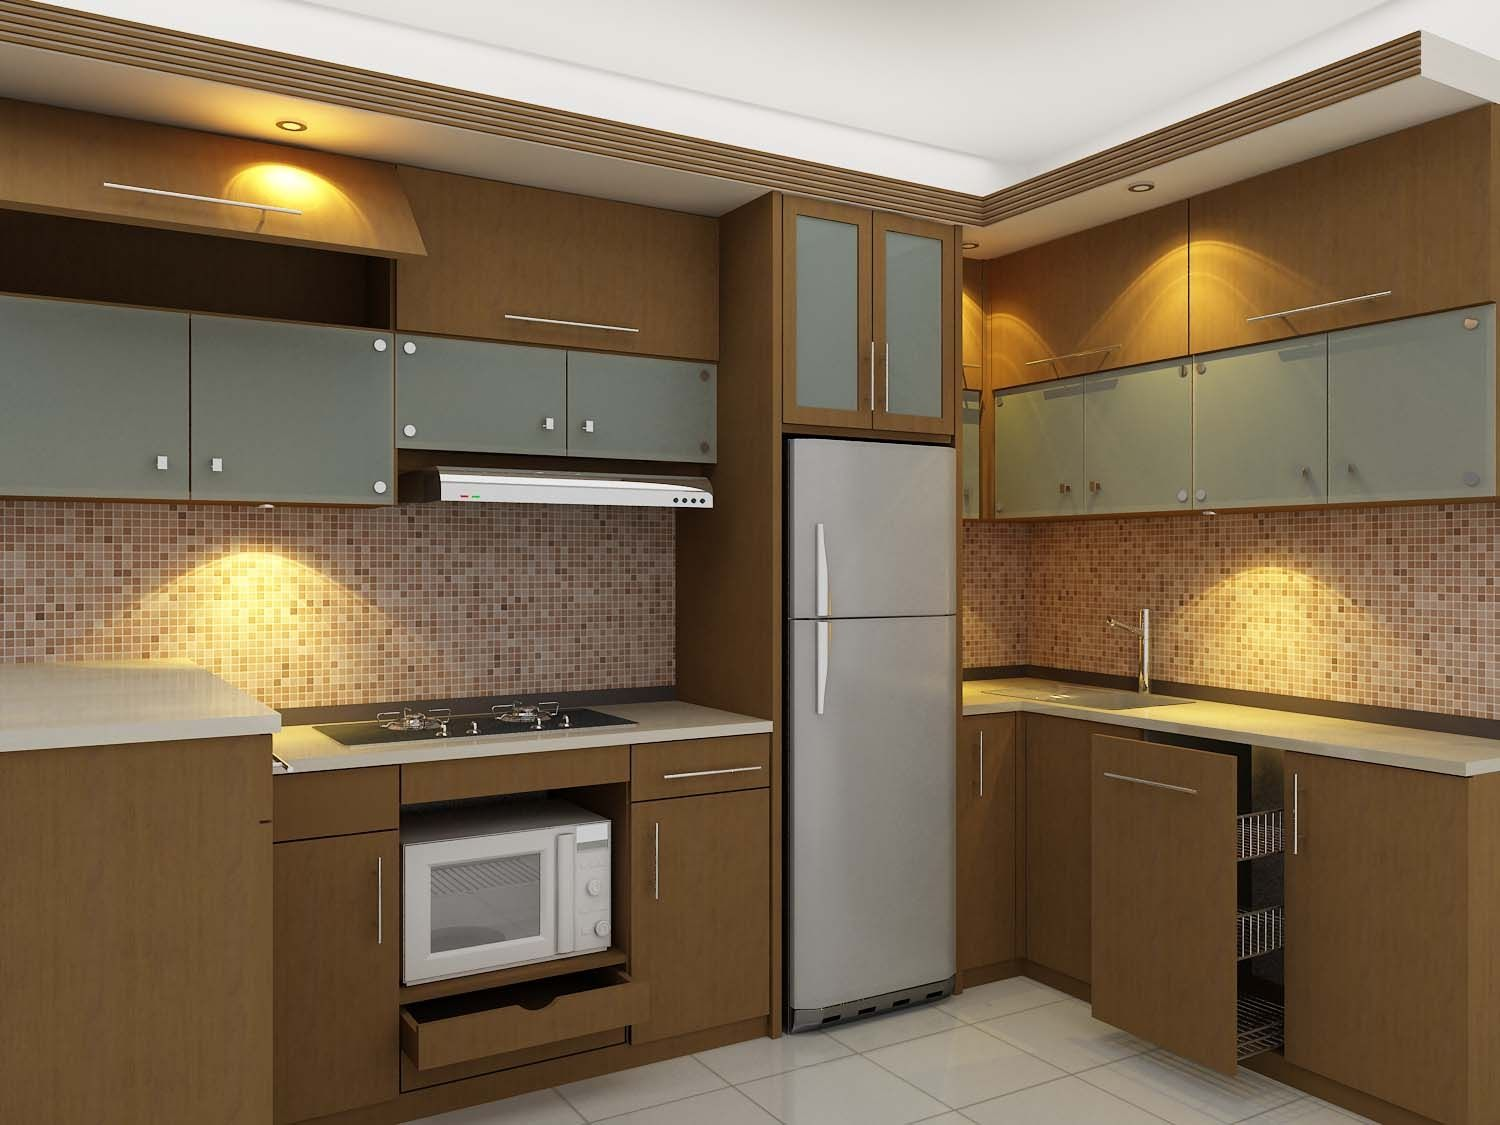 Desain kitchen set minimalis rumah pinterest kitchen Kitchen setting pictures